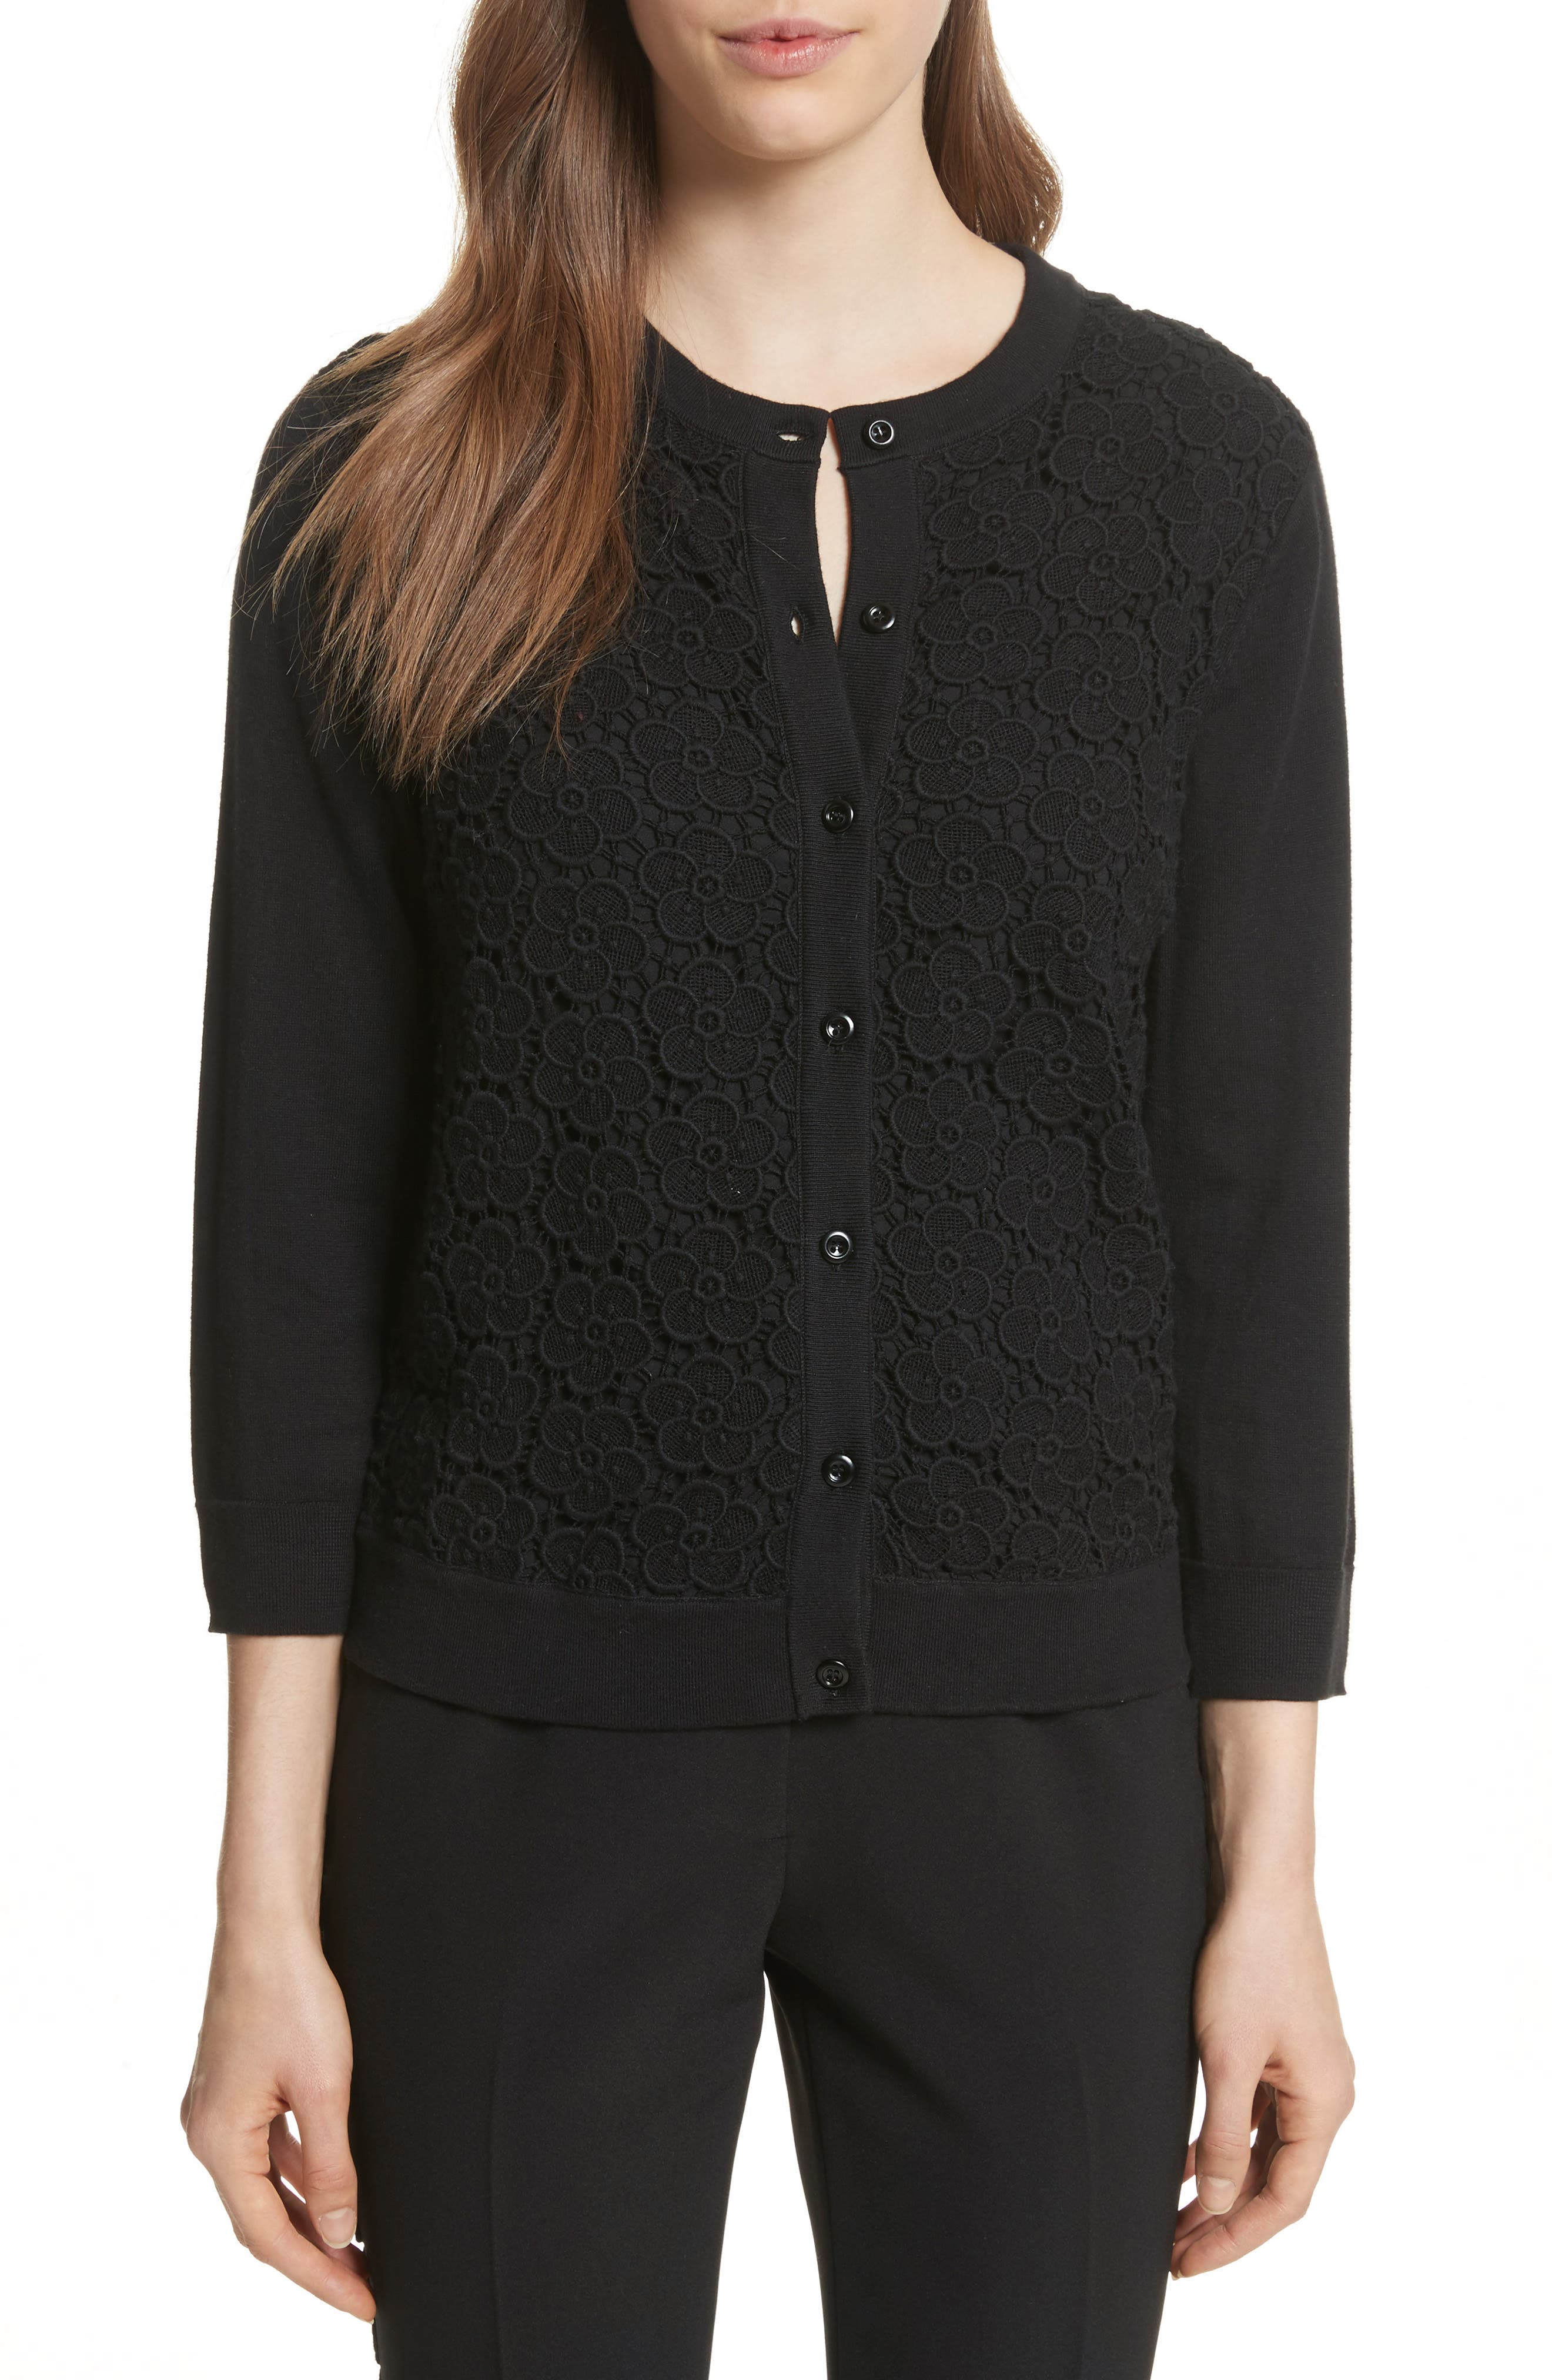 bloom floral lace cardigan,                             Main thumbnail 1, color,